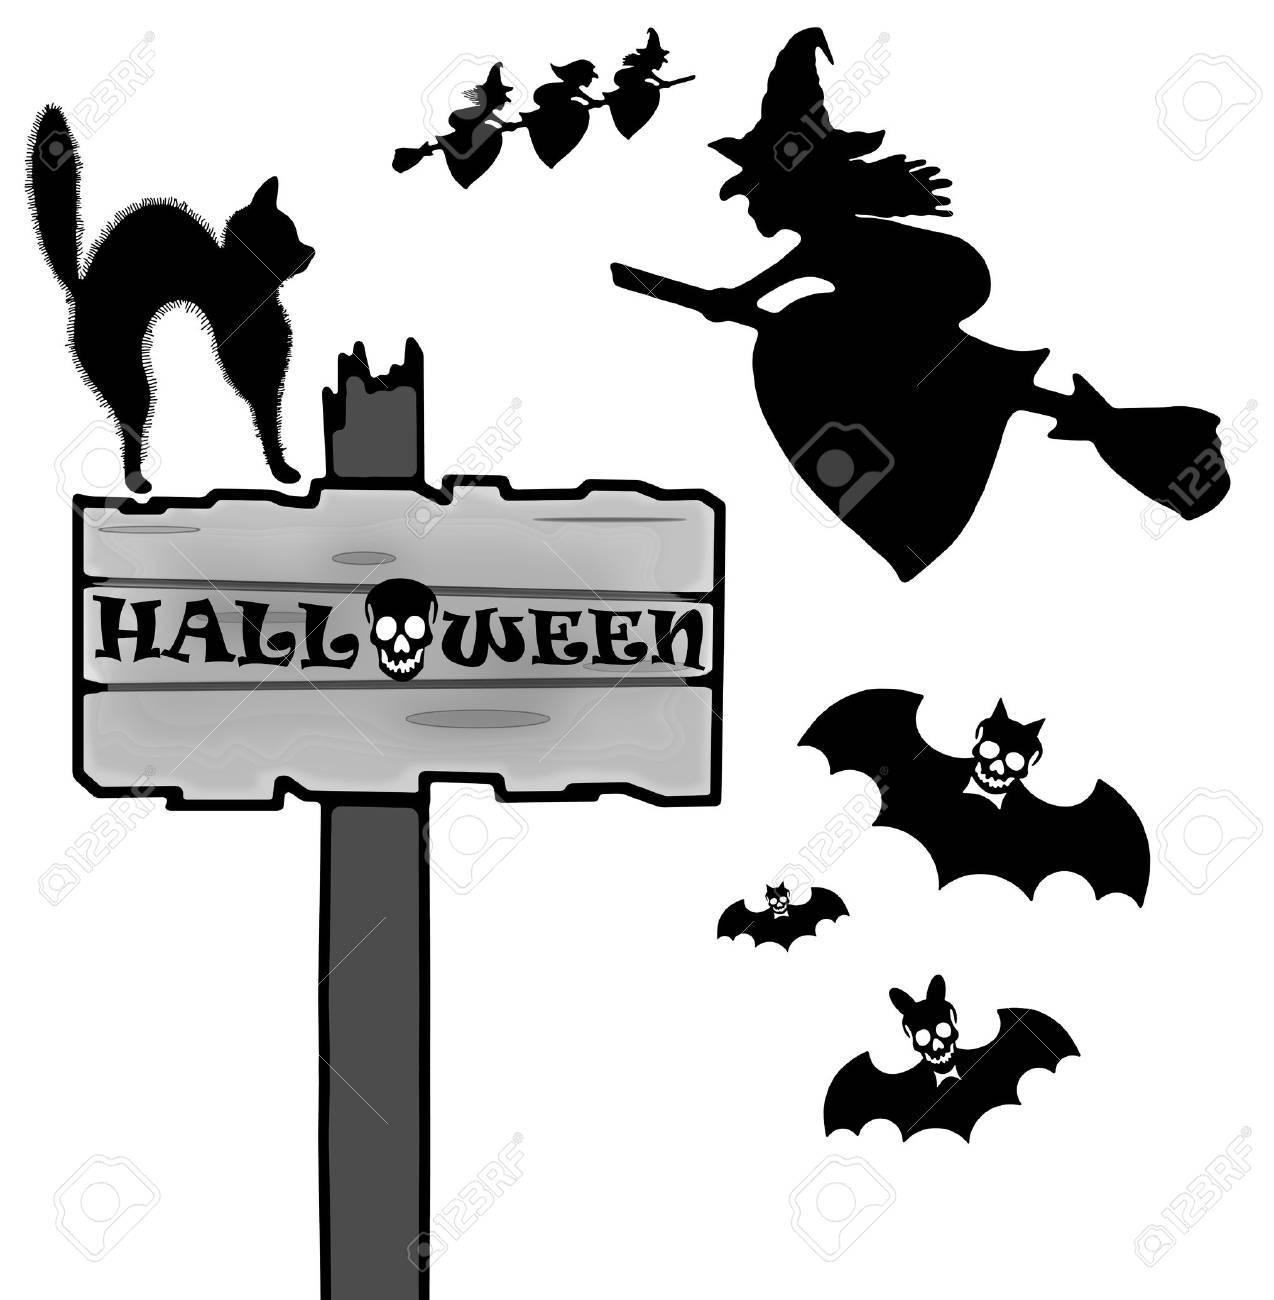 Halloween sign and icon Stock Photo - 22612236